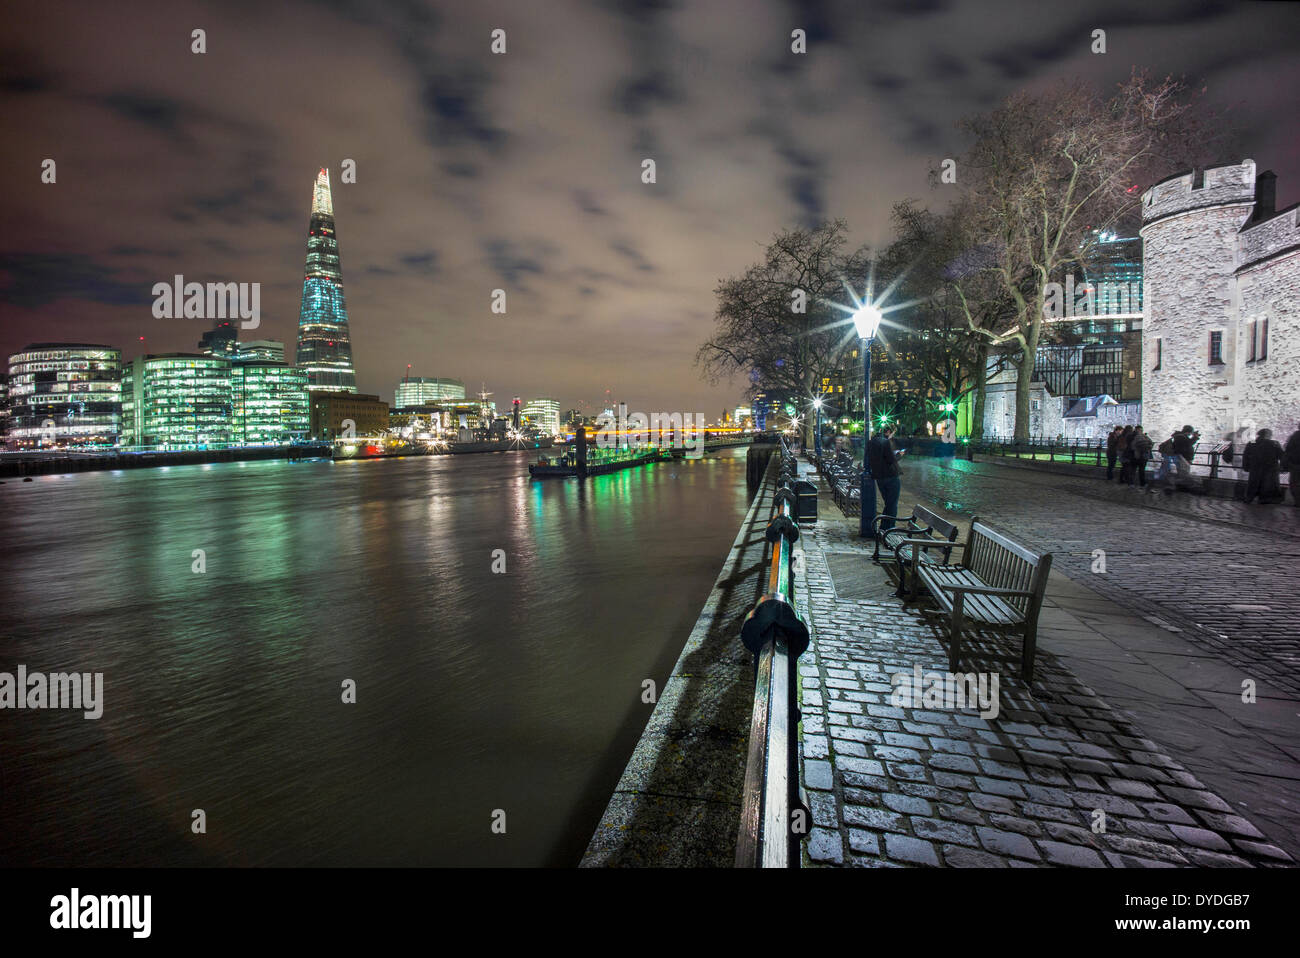 The Tower of London with The Shard and The River Thames at dusk. - Stock Image